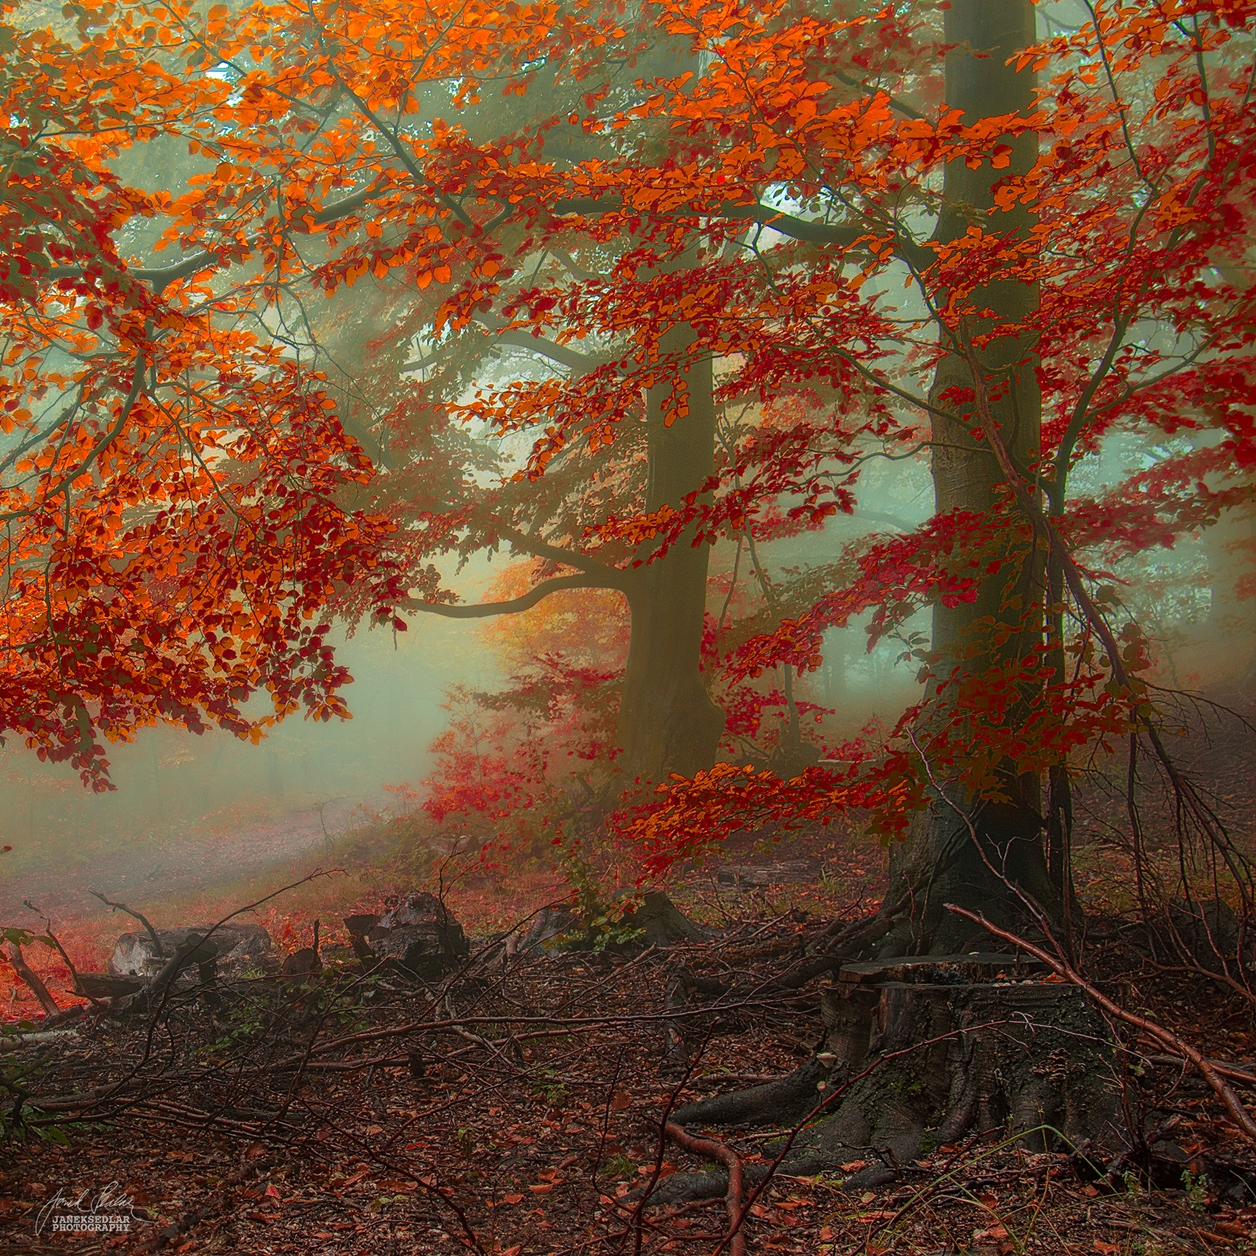 Autumn in pictures of Janek Sedlar 24